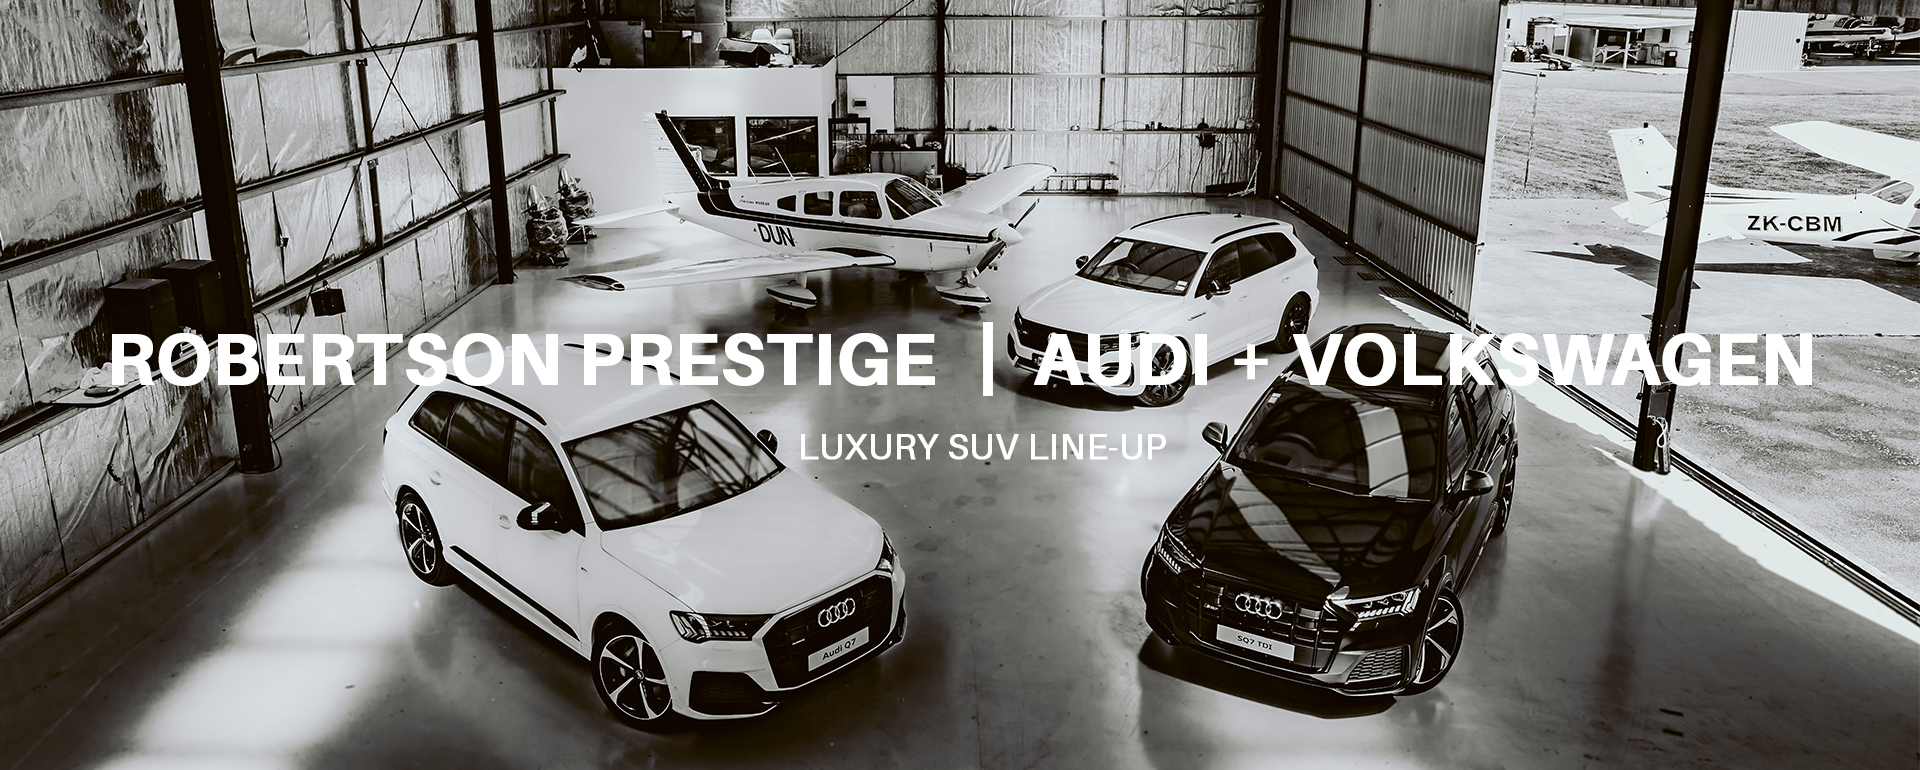 Luxury SUV Lineup